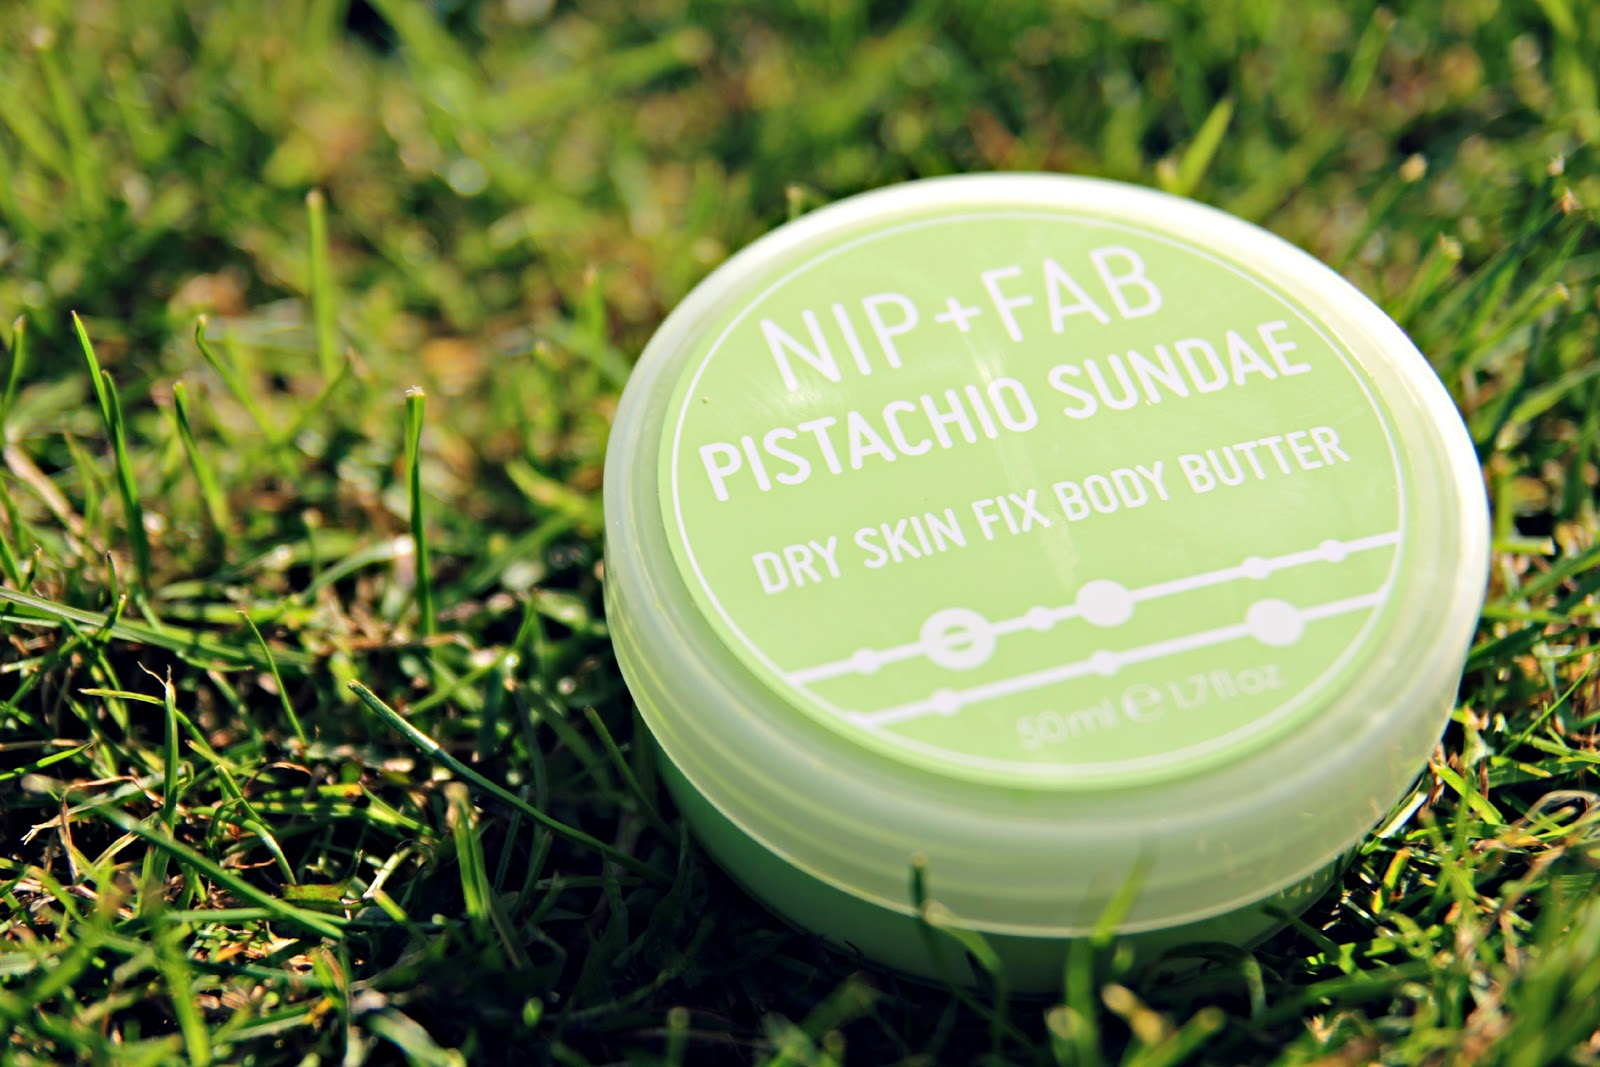 nip fab s pistachio sundae body butter is rich and